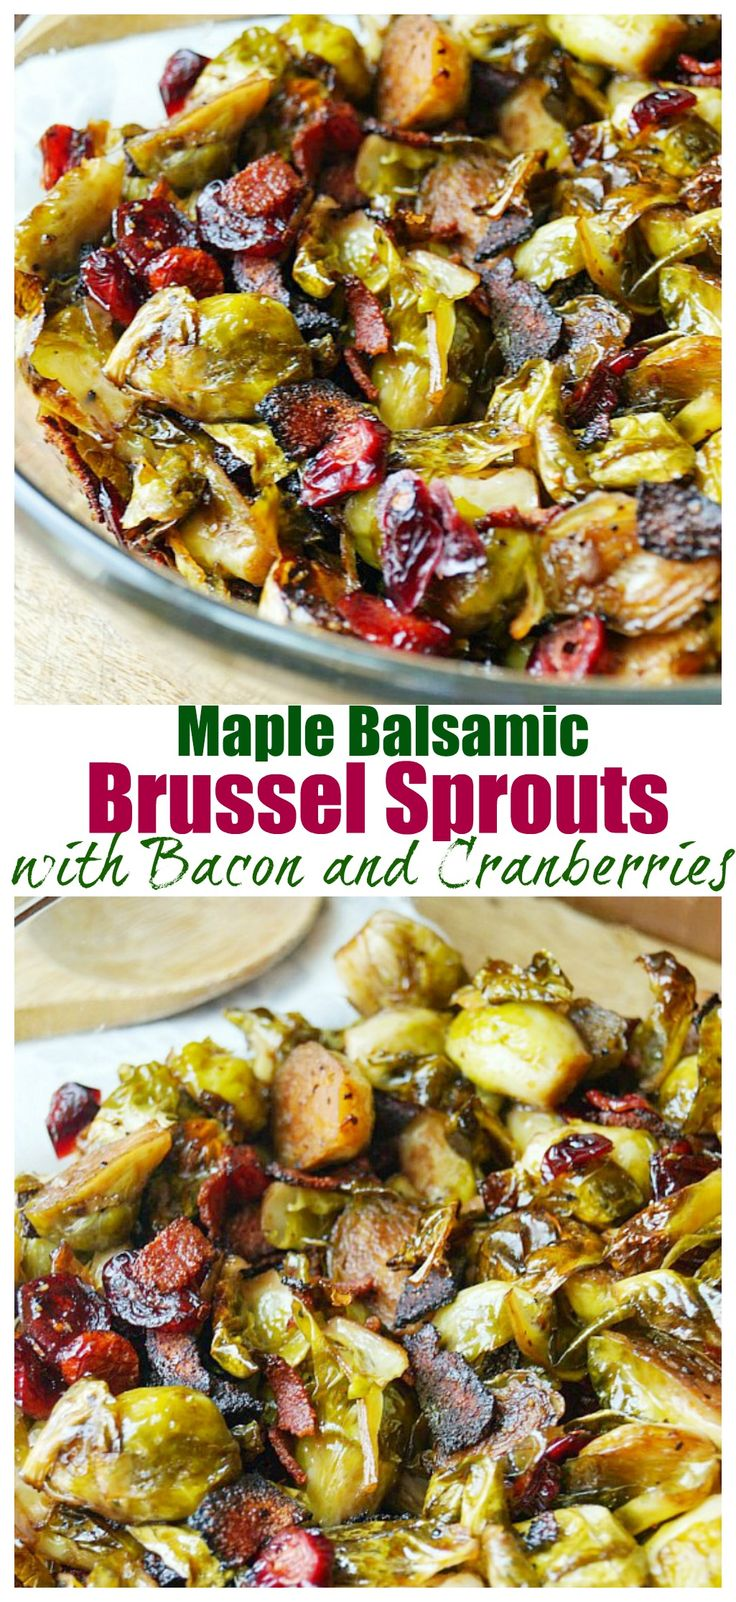 These Maple Balsamic Roasted Brussel Sprouts with Bacon and Cranberries are a delicious side dish for any dinner and are perfect for Thanksgiving dinner!